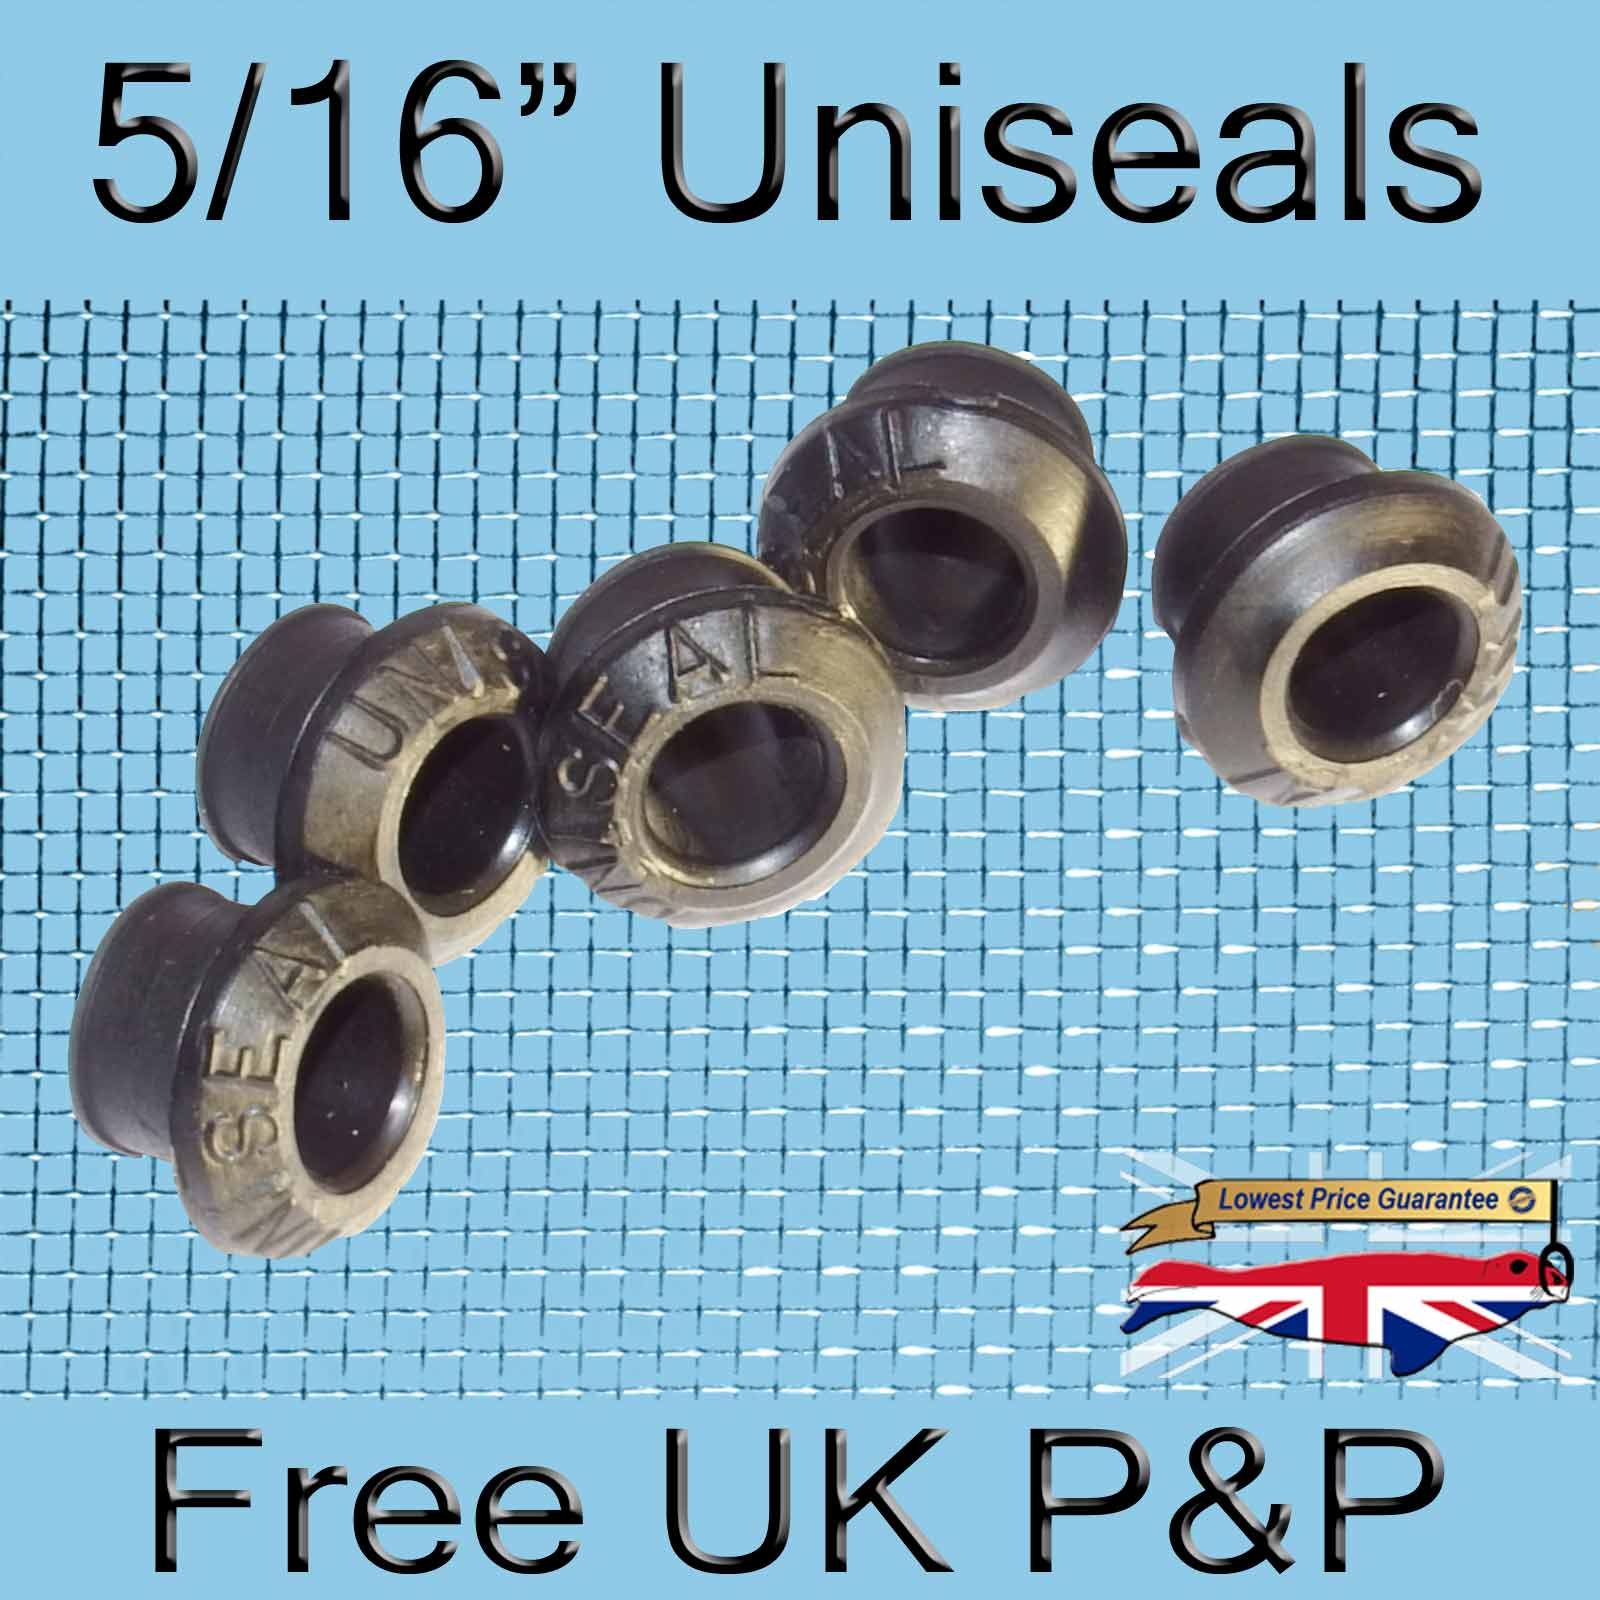 Magnify 5/16 inch Uniseal photo 5xfive-sixteenths-Uniseal-Tank-Connector.jpg